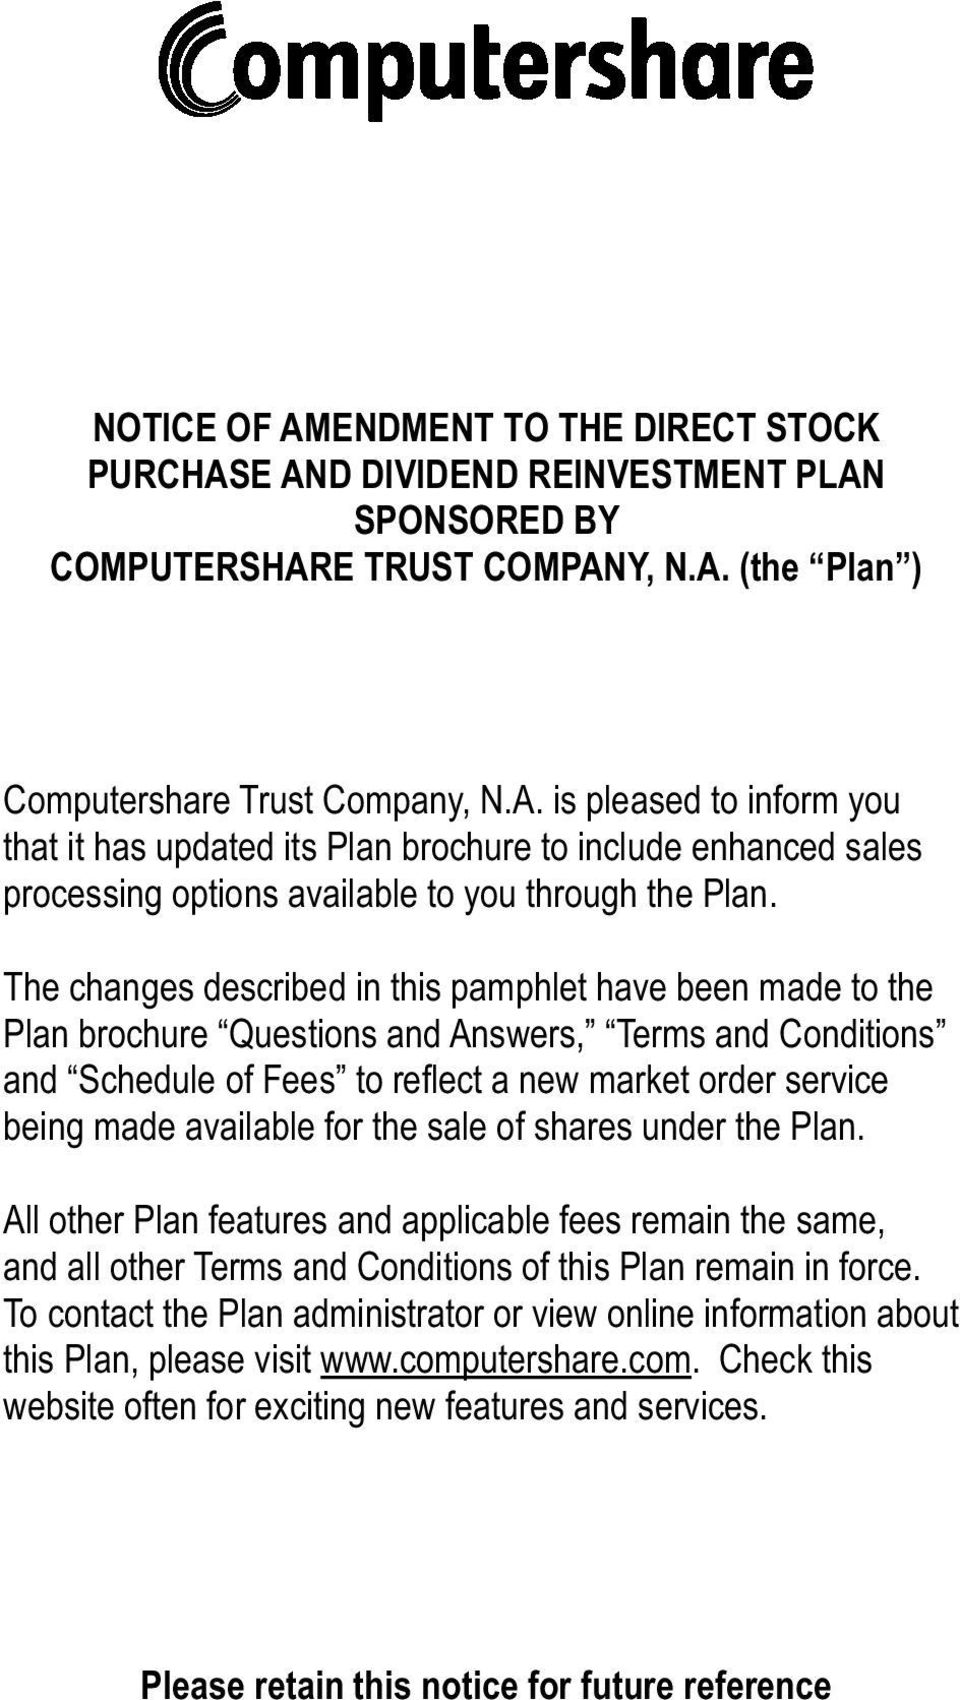 for the sale of shares under the Plan. All other Plan features and applicable fees remain the same, and all other Terms and Conditions of this Plan remain in force.